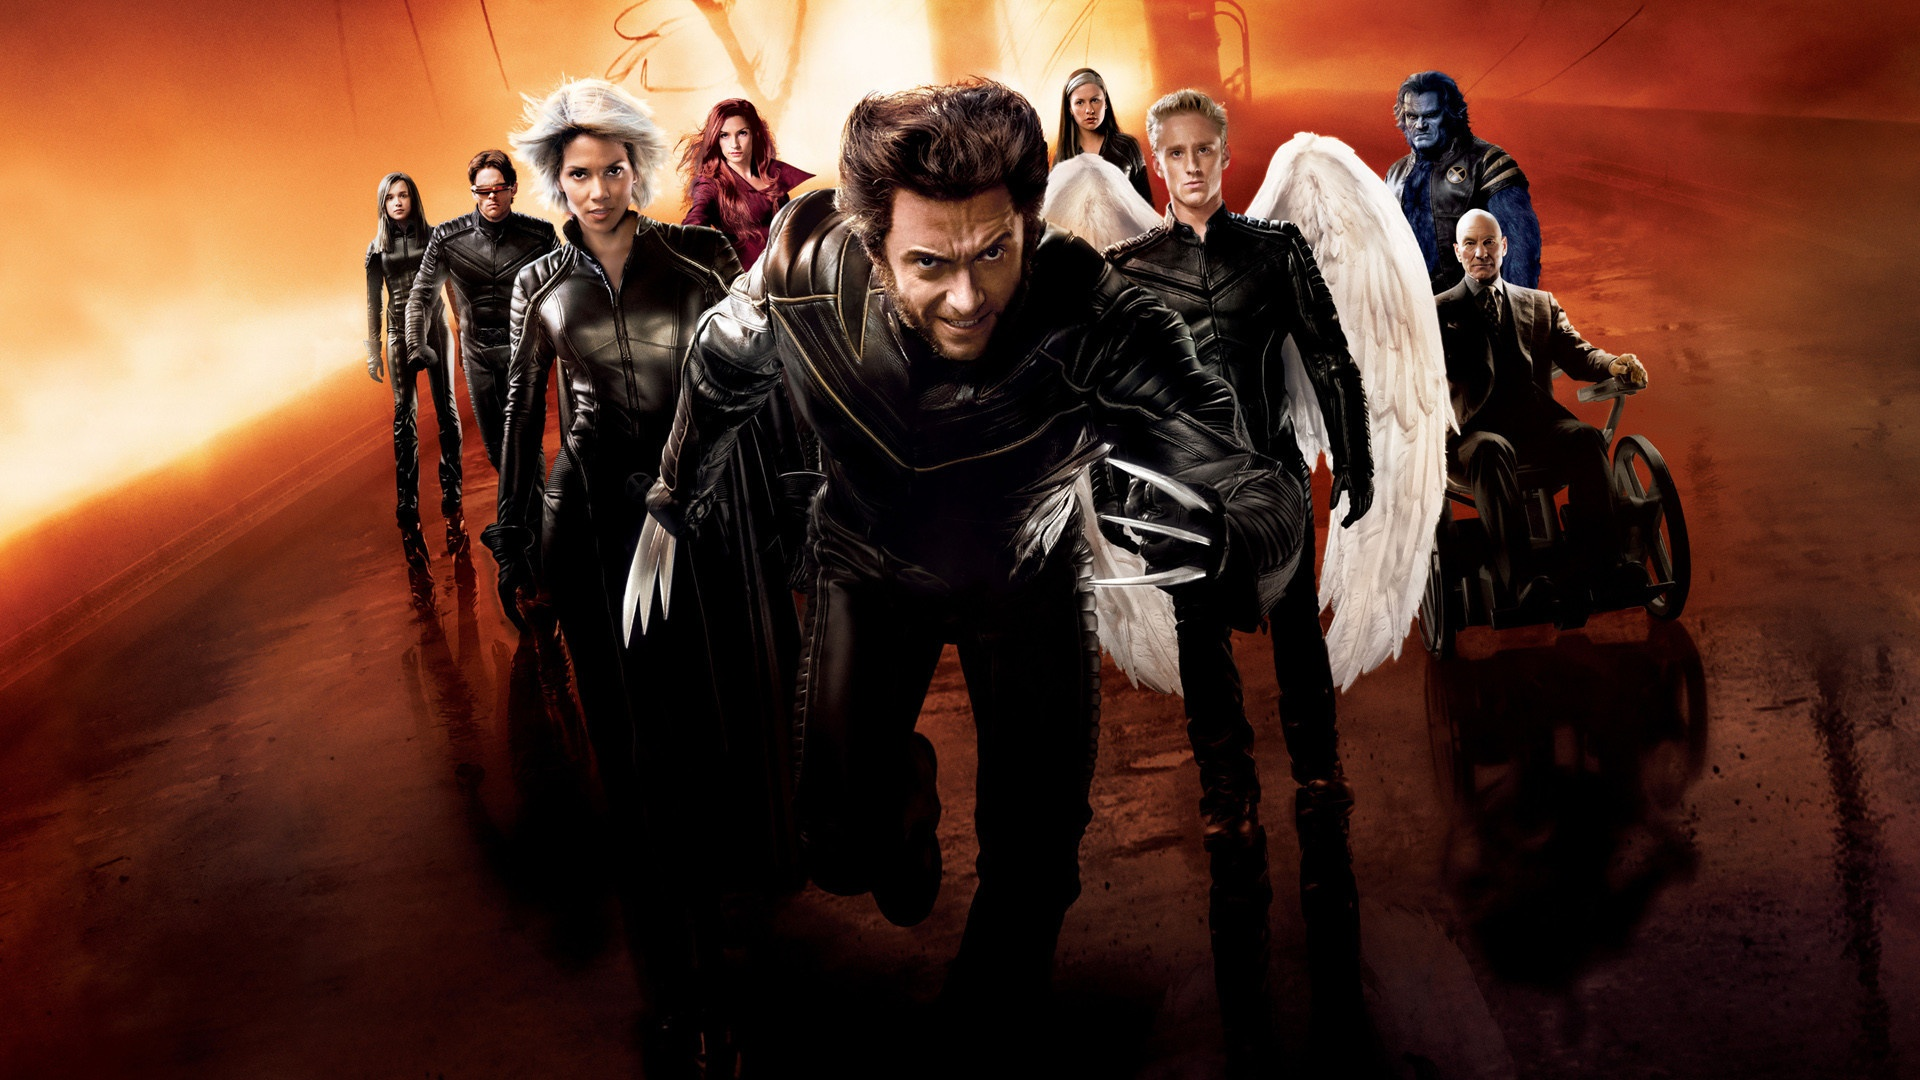 Movies pyro x men the last stand gif on gifer by blackweaver.